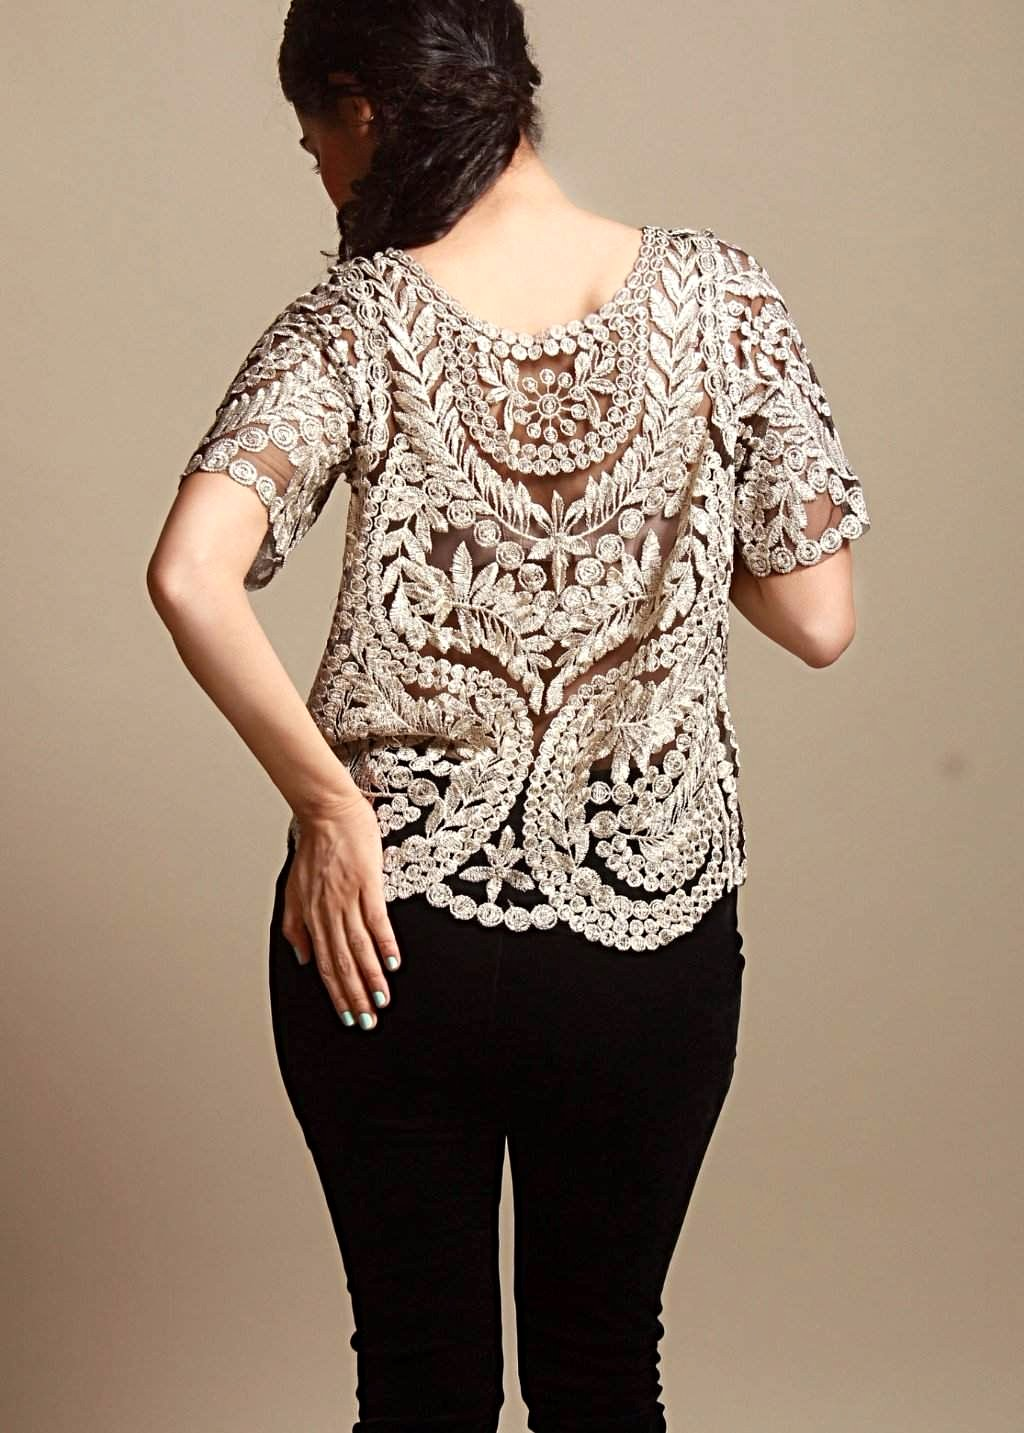 CLASSIC THREAD Net Wonders Lace Top